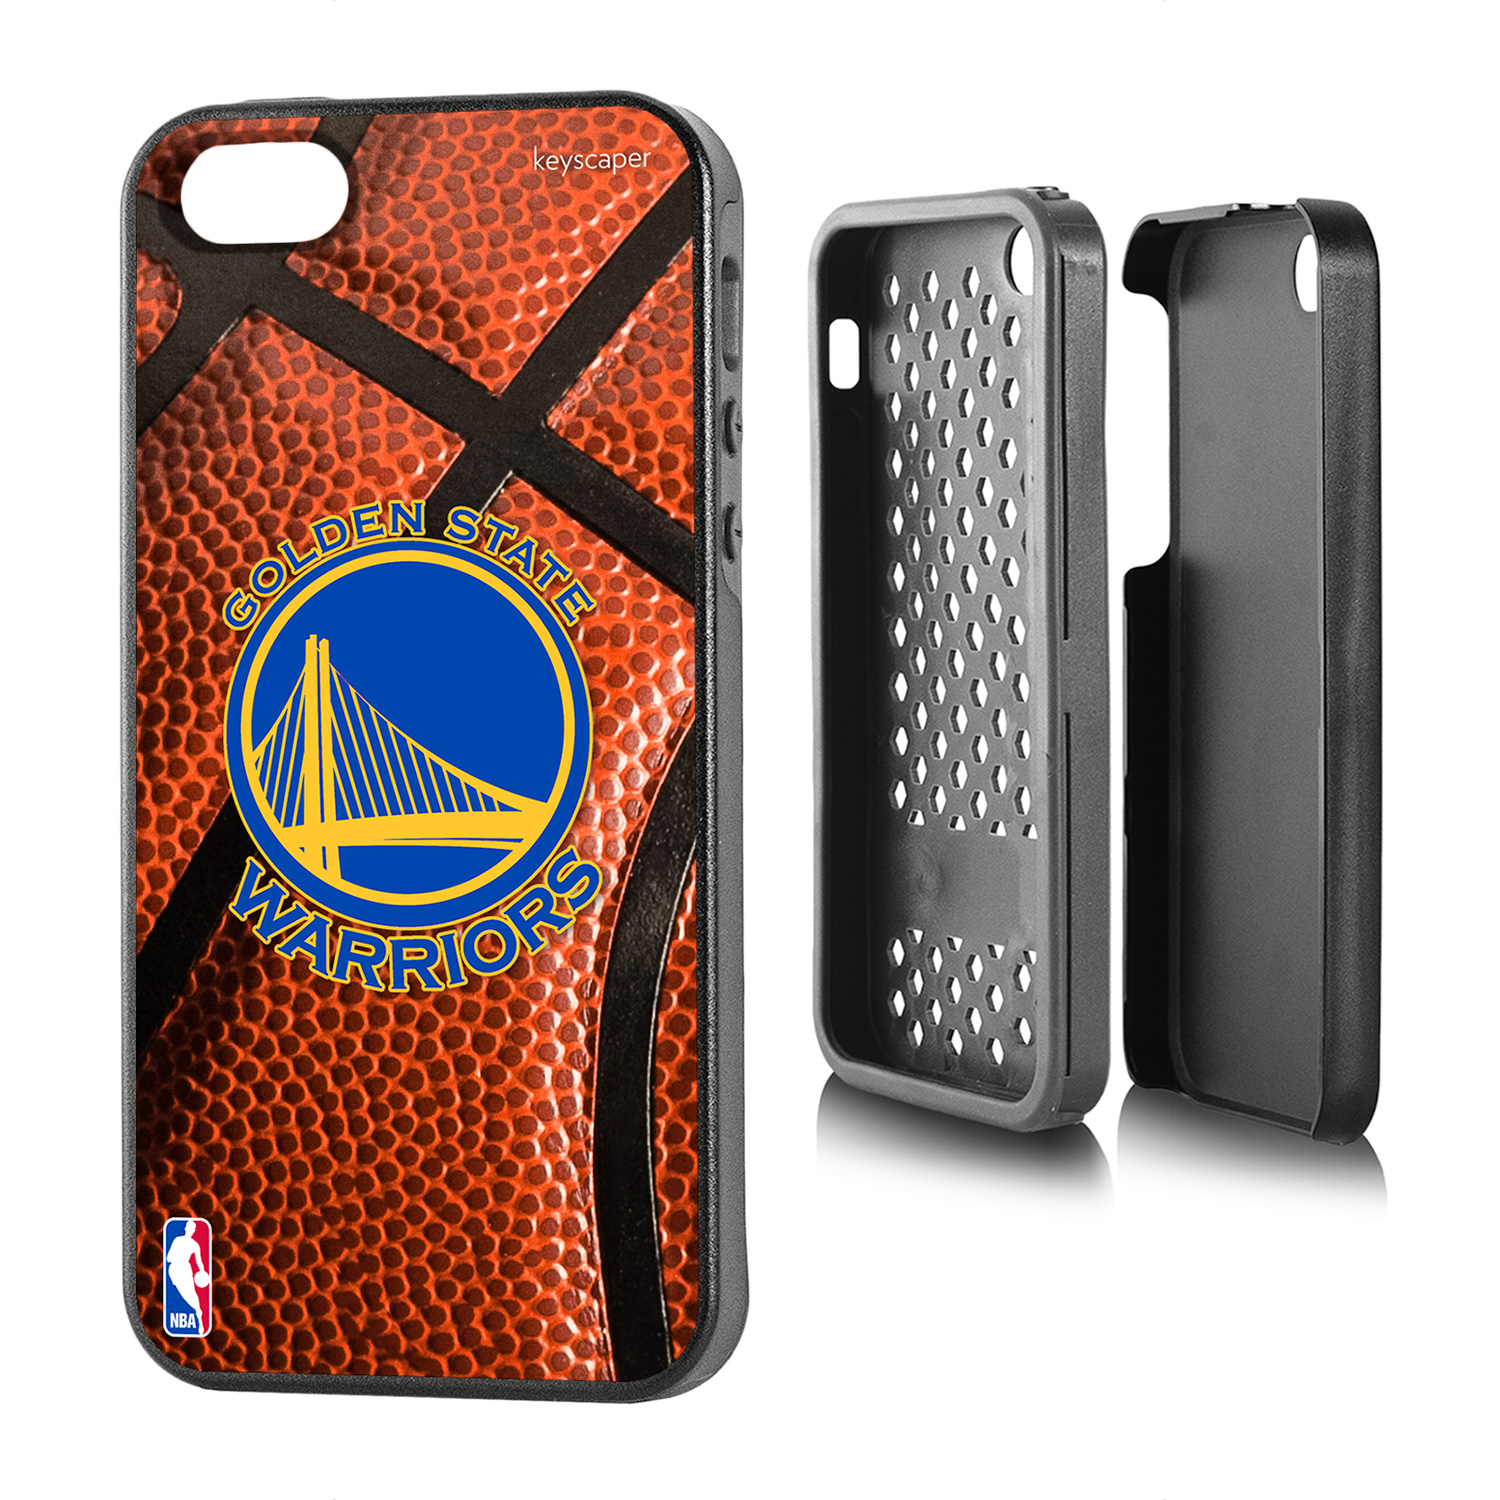 Golden State Warriors Basketball Design Apple iPhone 5/5S Rugged Case by Keyscaper